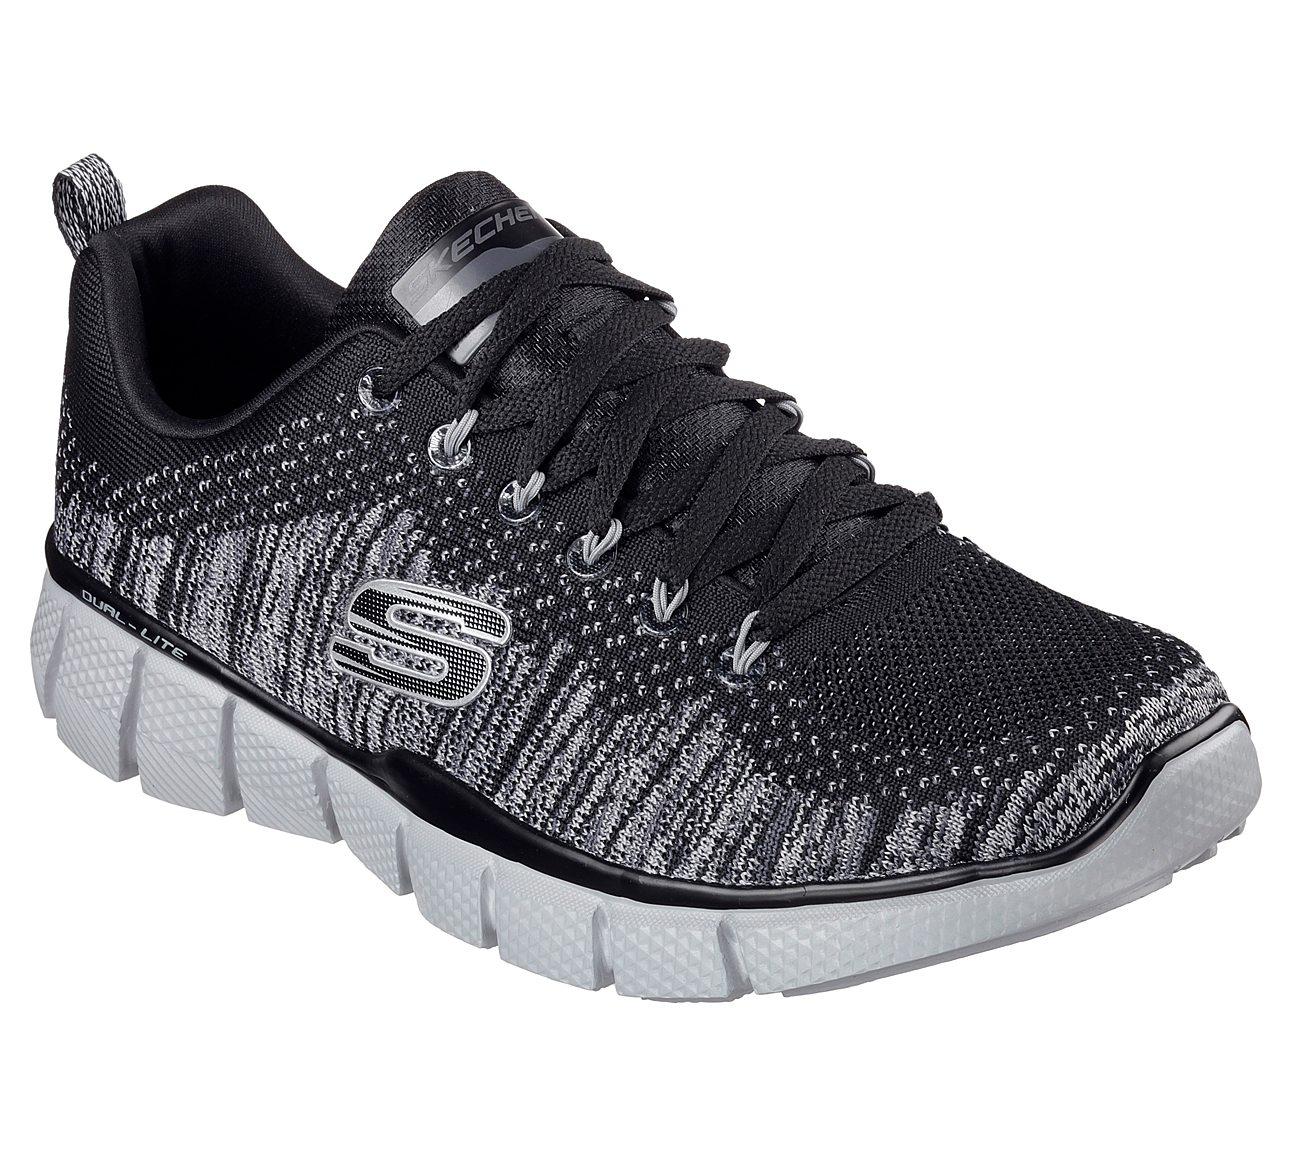 Skechers Equalizer Shoes Review